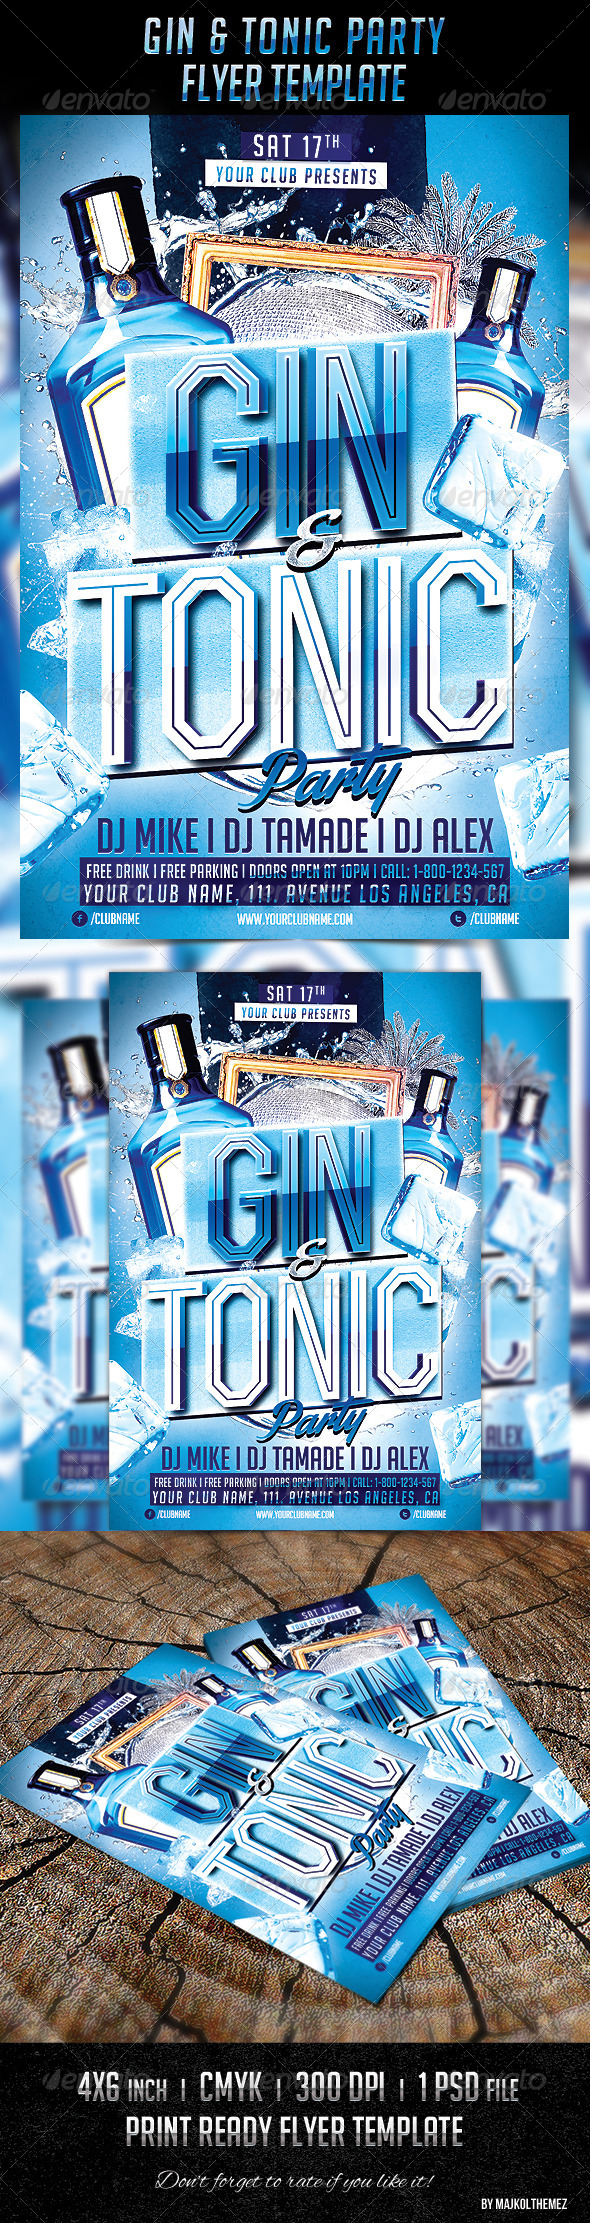 Gin Tonic Night Party Flyer - Events Flyers